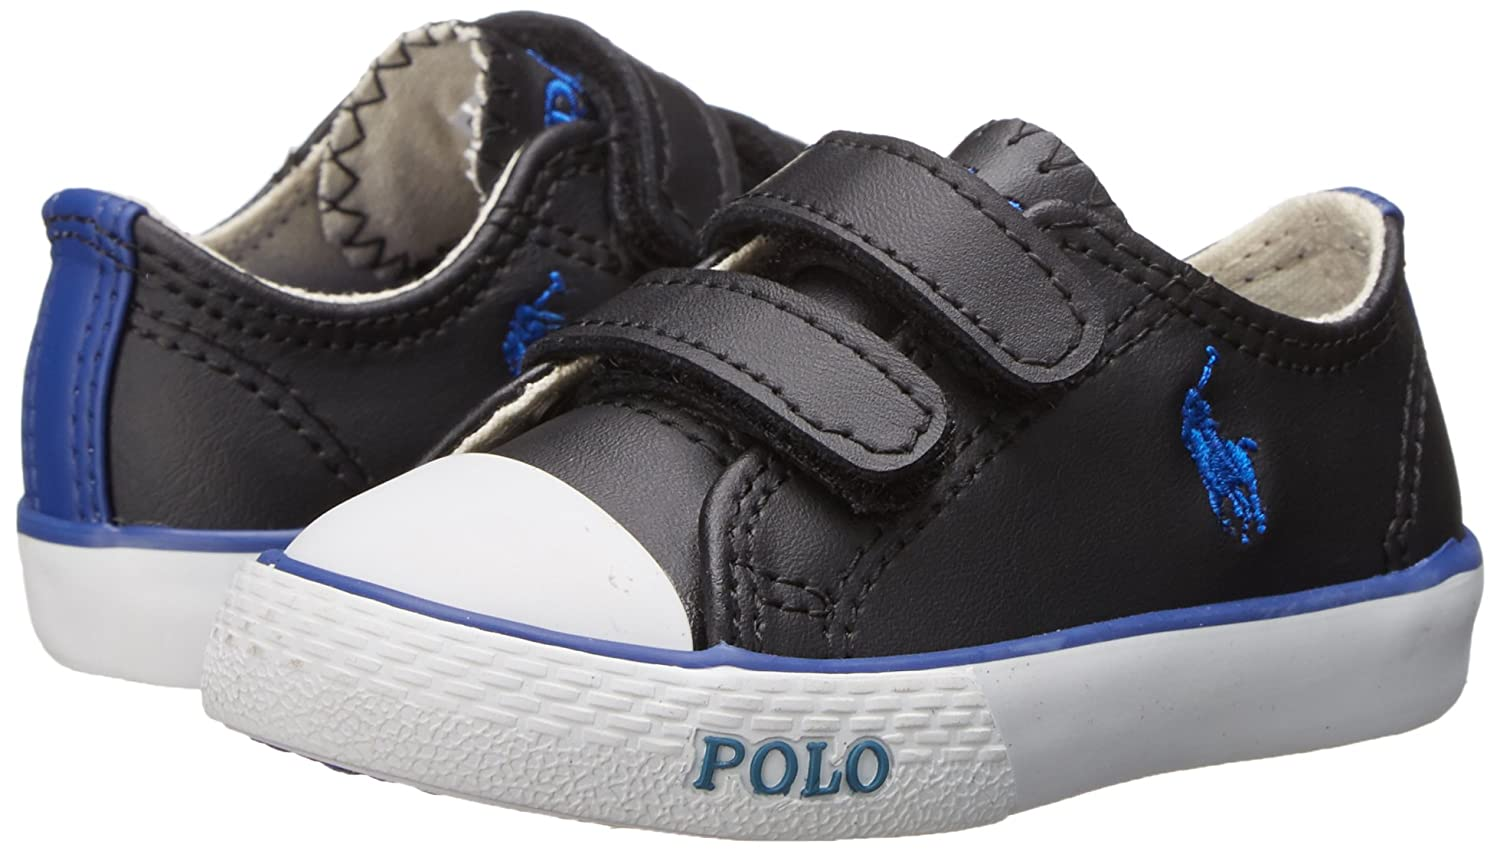 91a3362458 Polo Ralph Lauren Kids Carson II EZ Fashion Sneaker (Toddler)